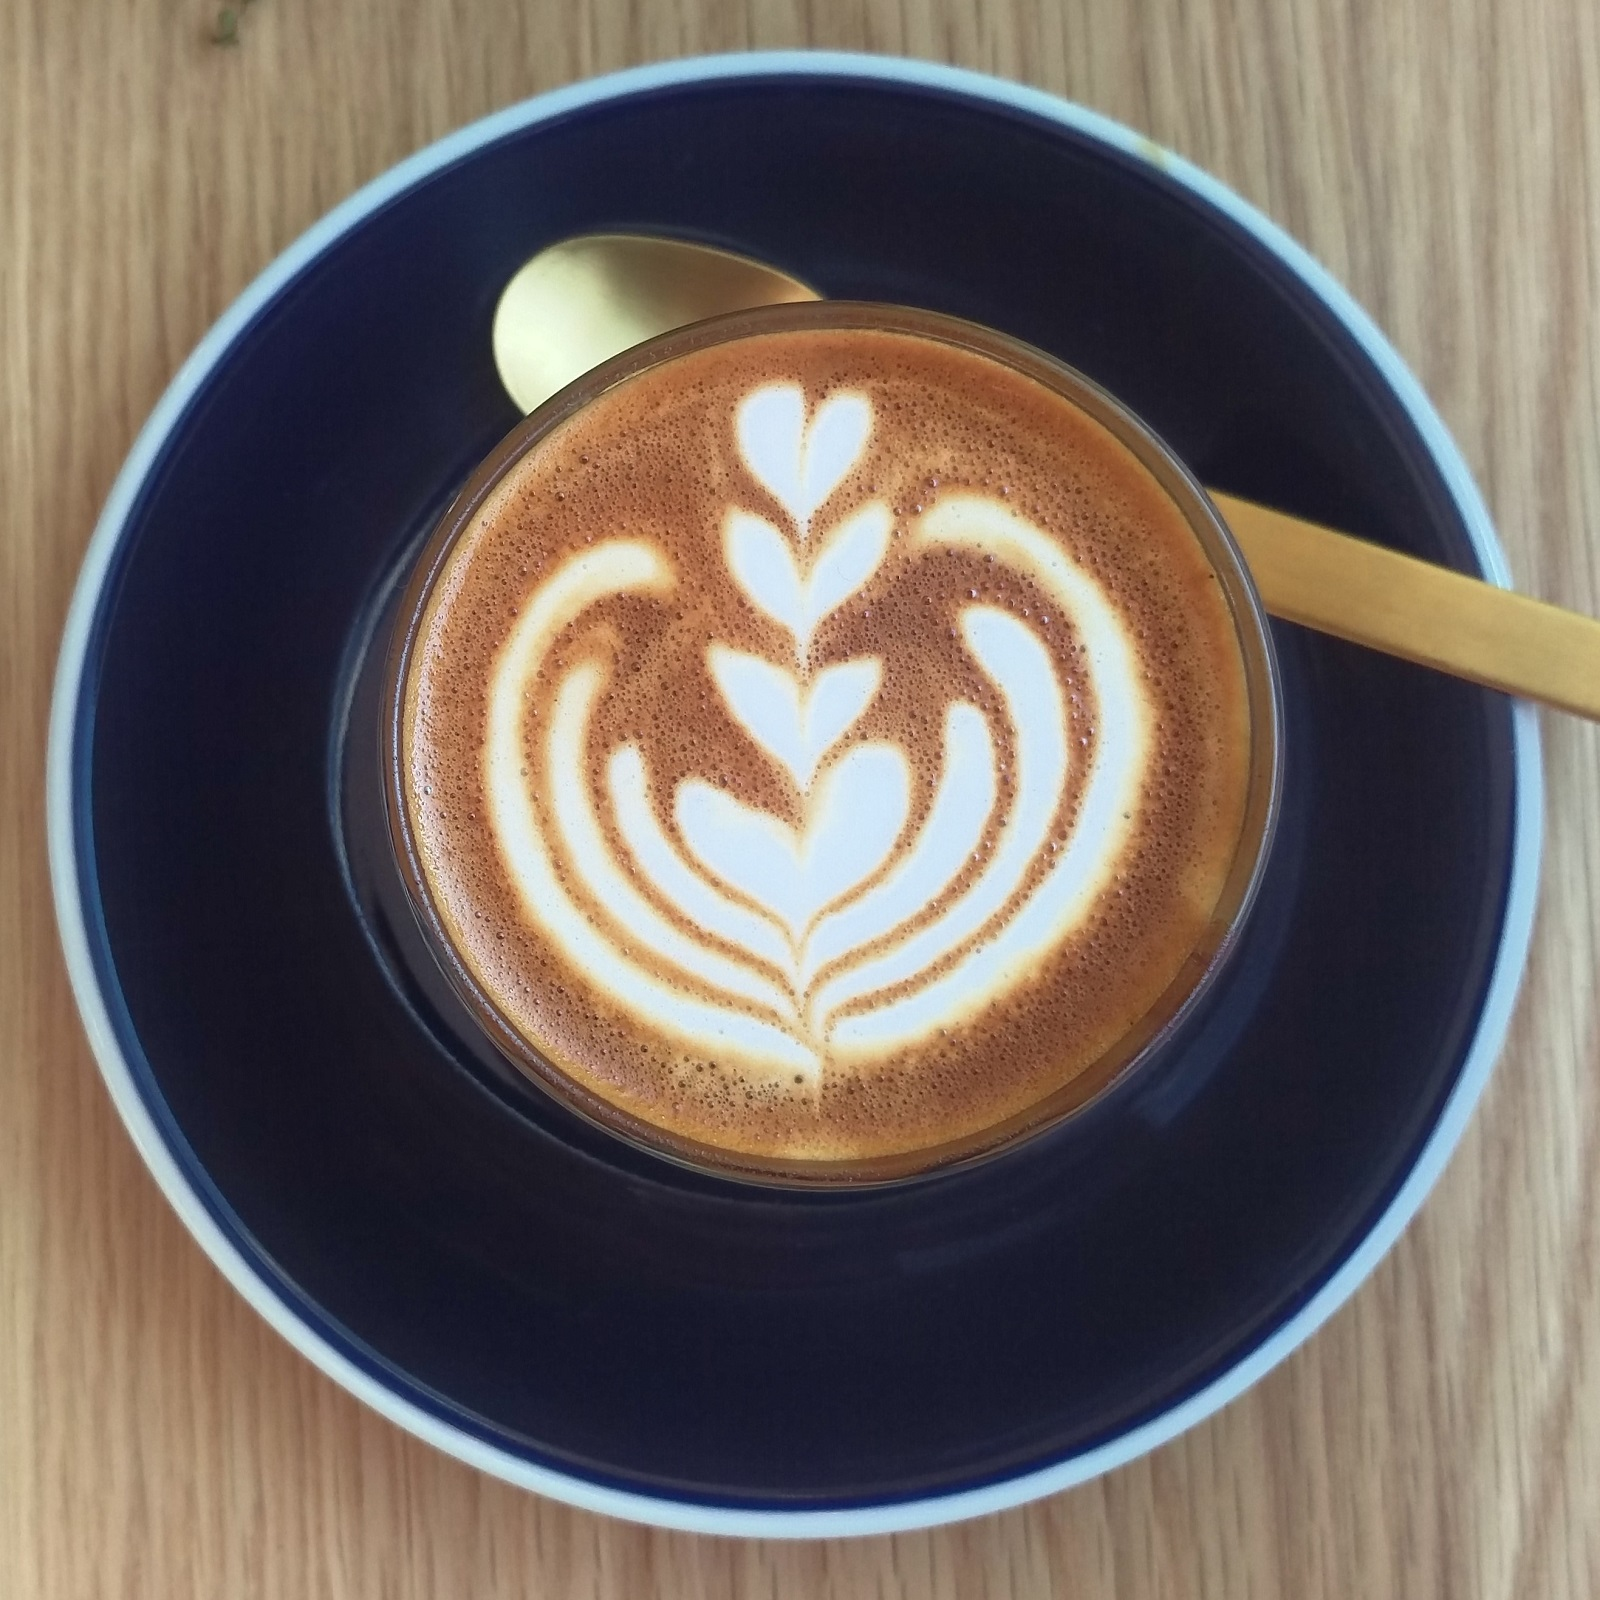 Some lovely latte art in an equally lovely piccolo made with the Party Blend at Party on Pavilion, London and served in a glass on a black saucer.